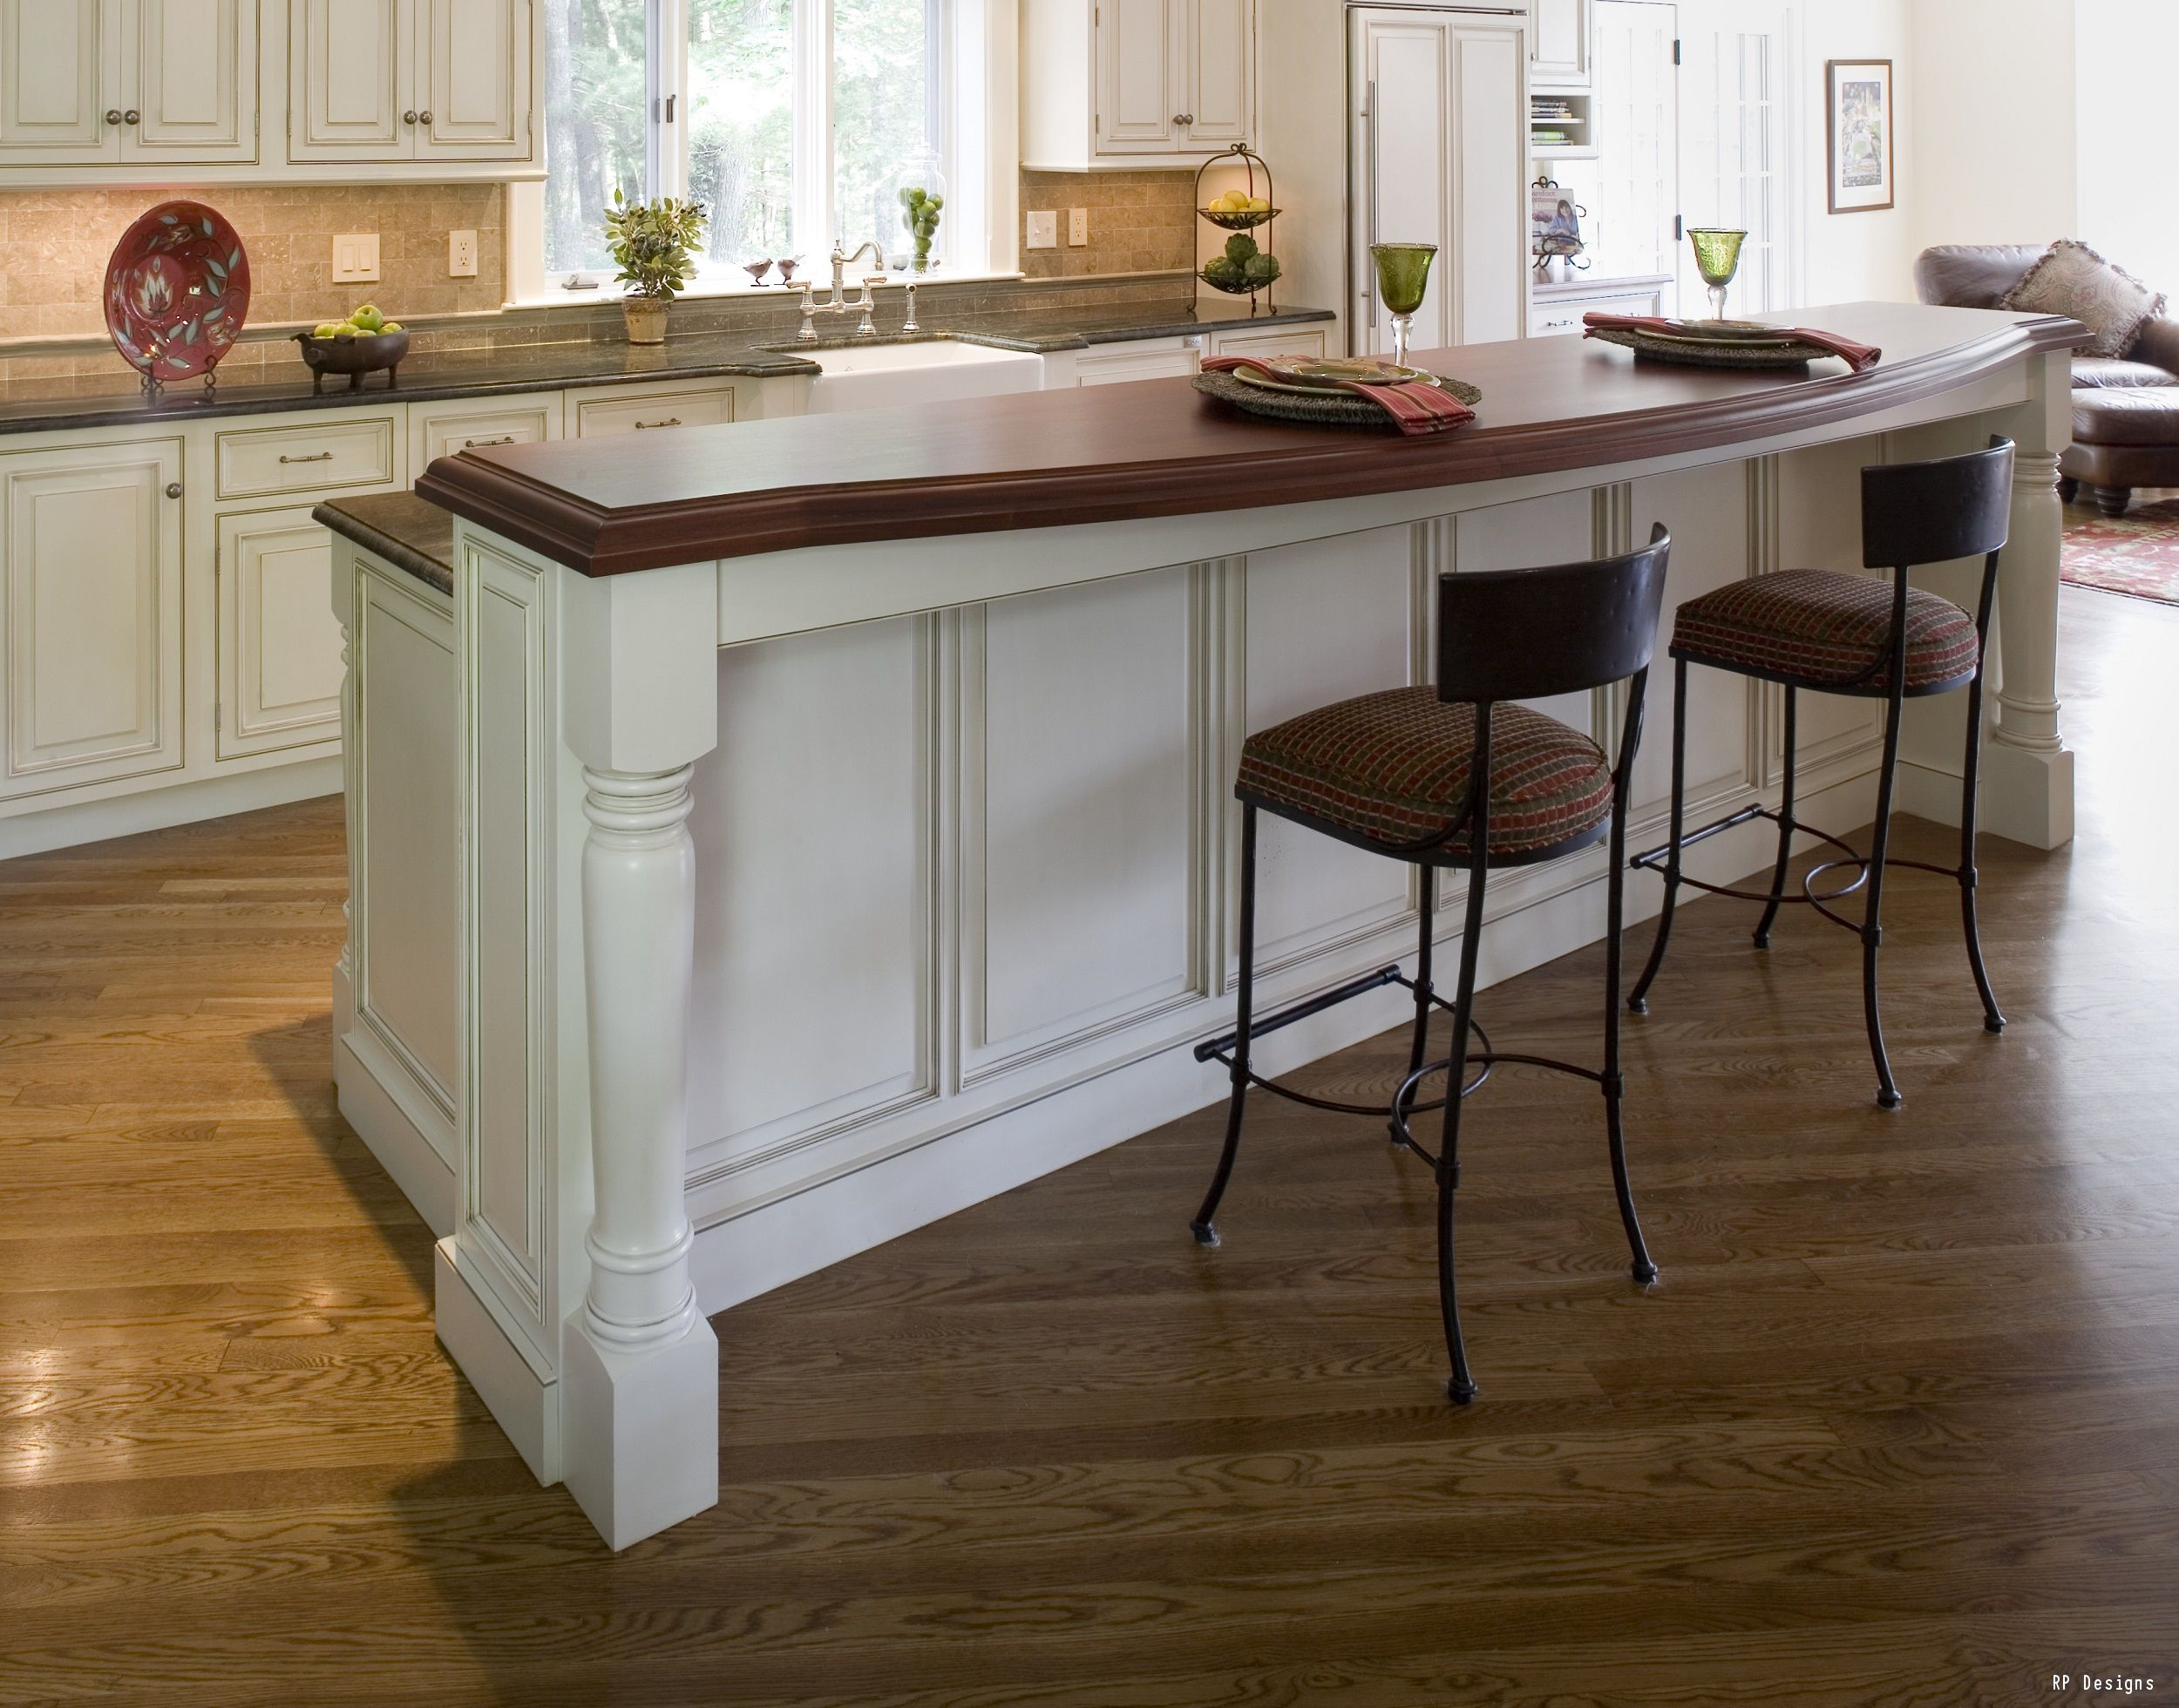 A Gorgeous White Island With A Flawless Wood Countertop The